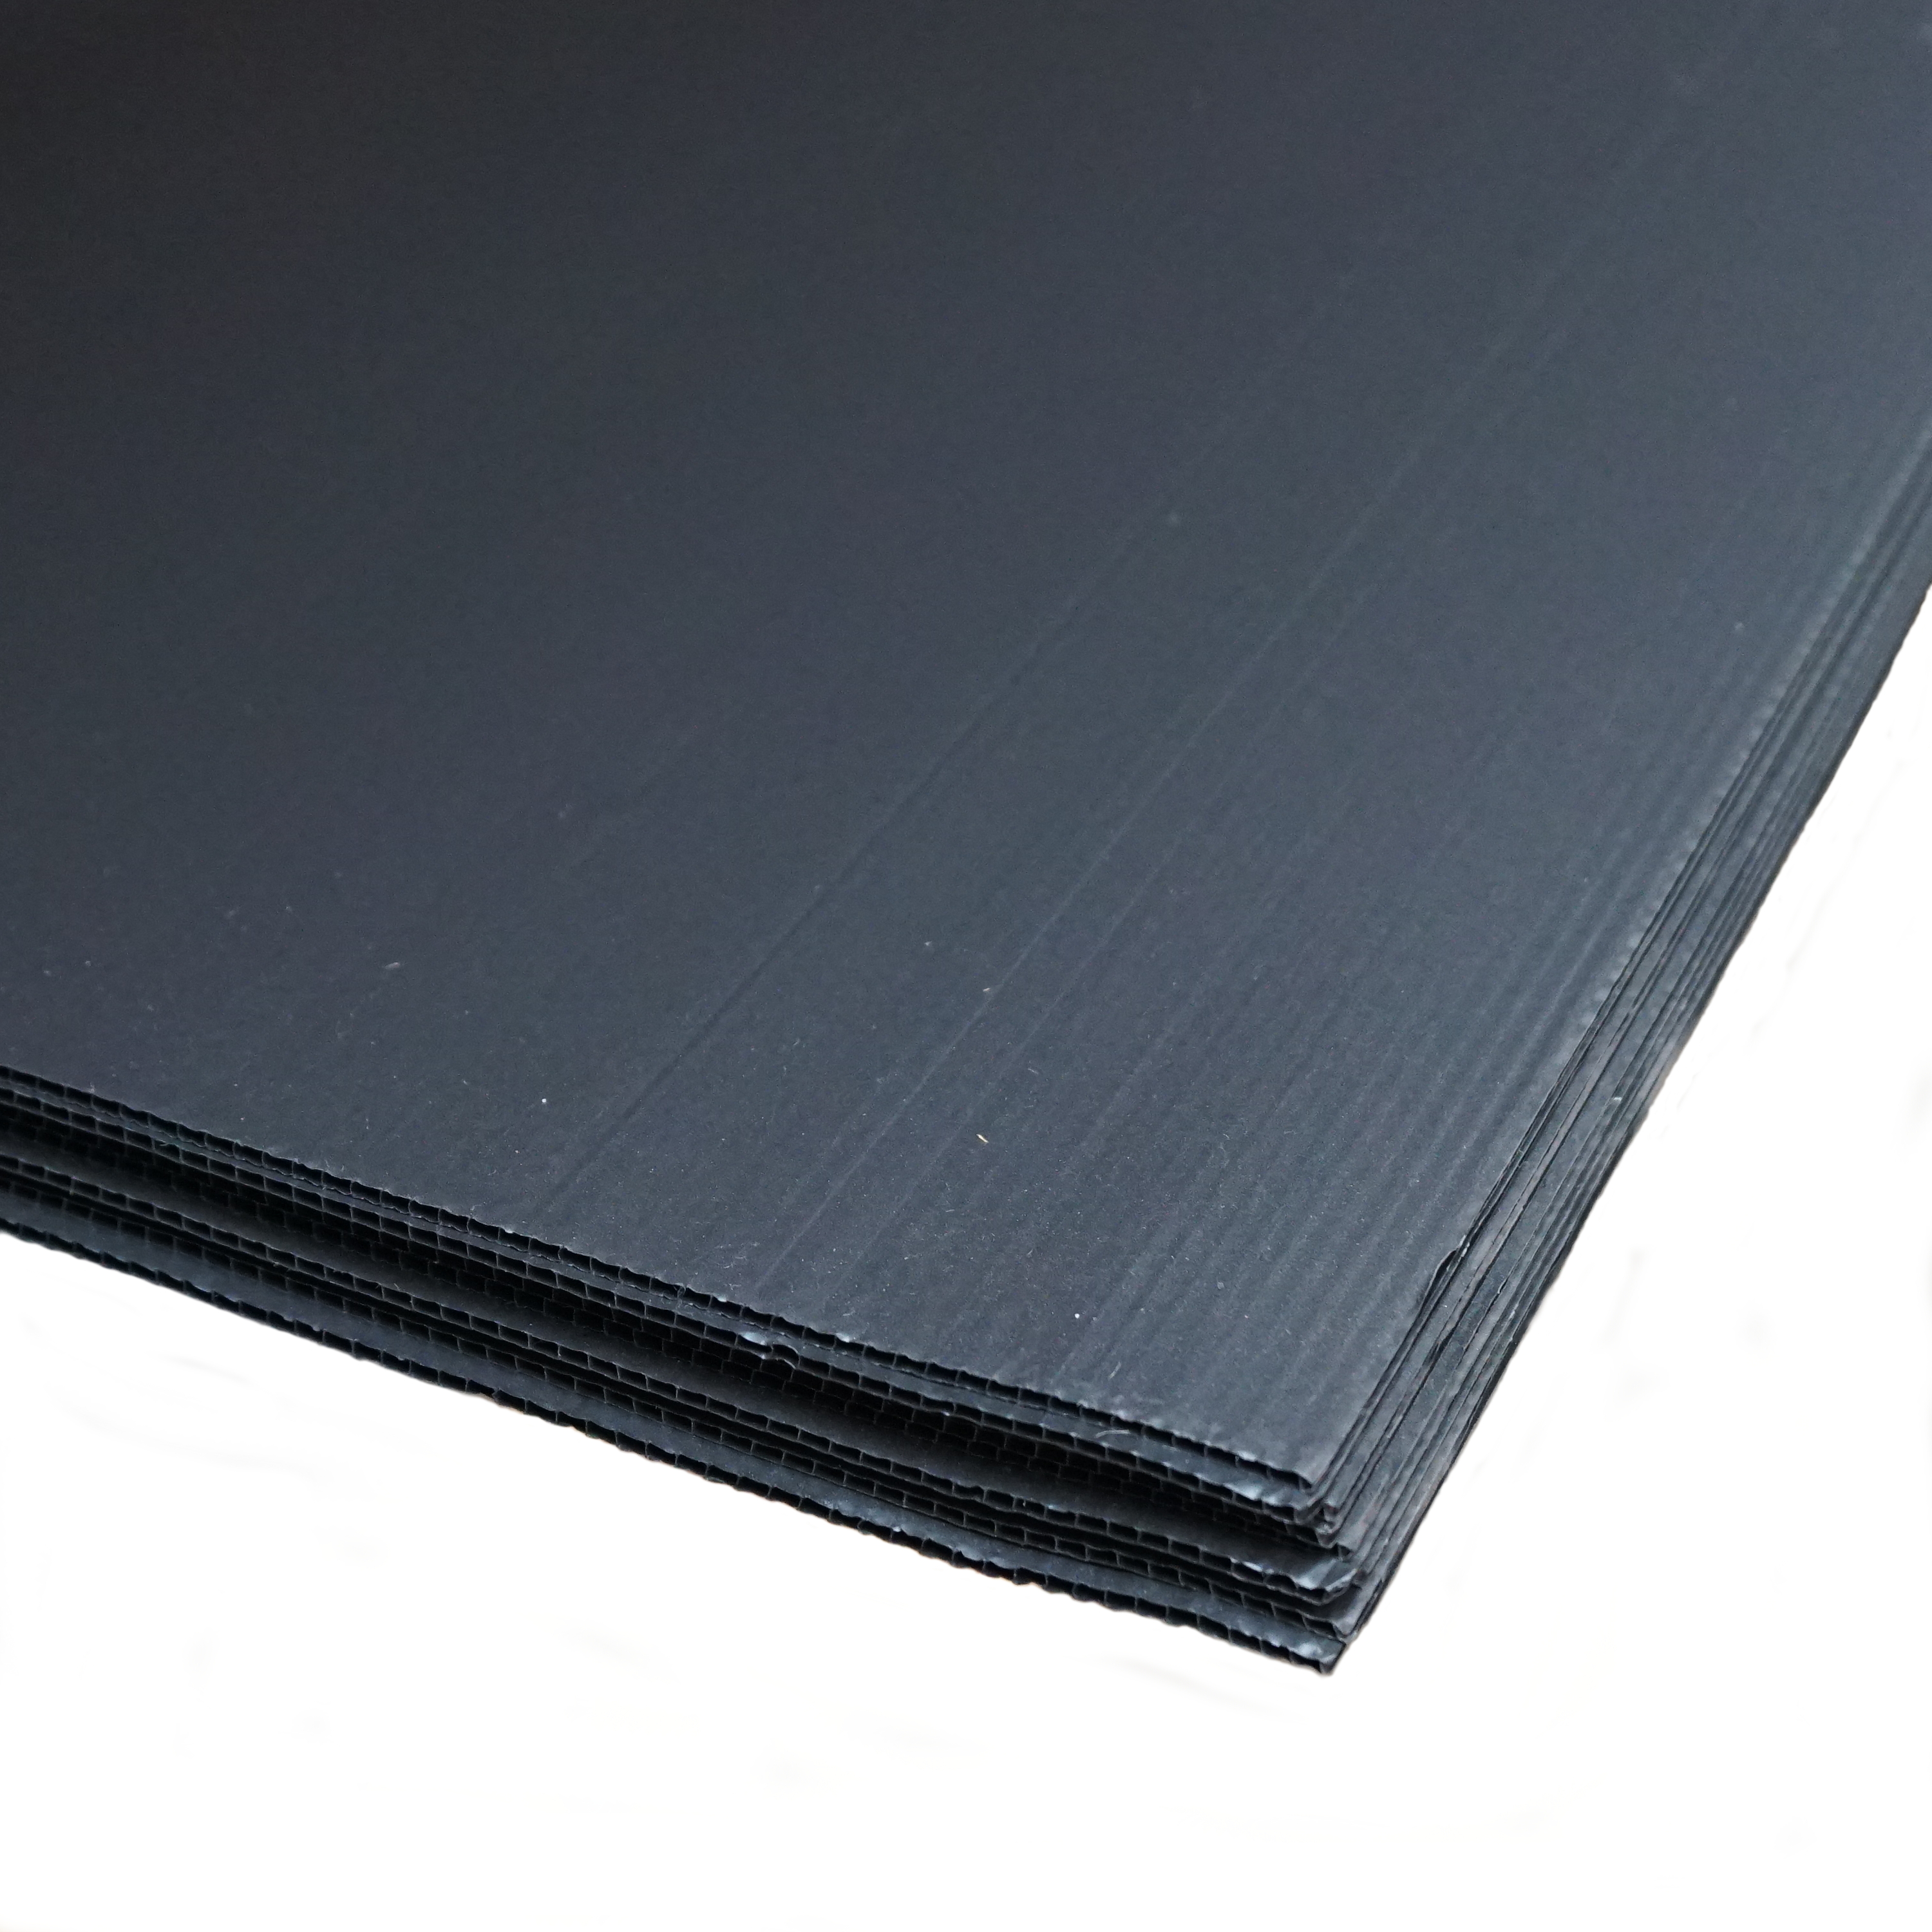 2.4m x 1.2m x 2mm Black Protection Board